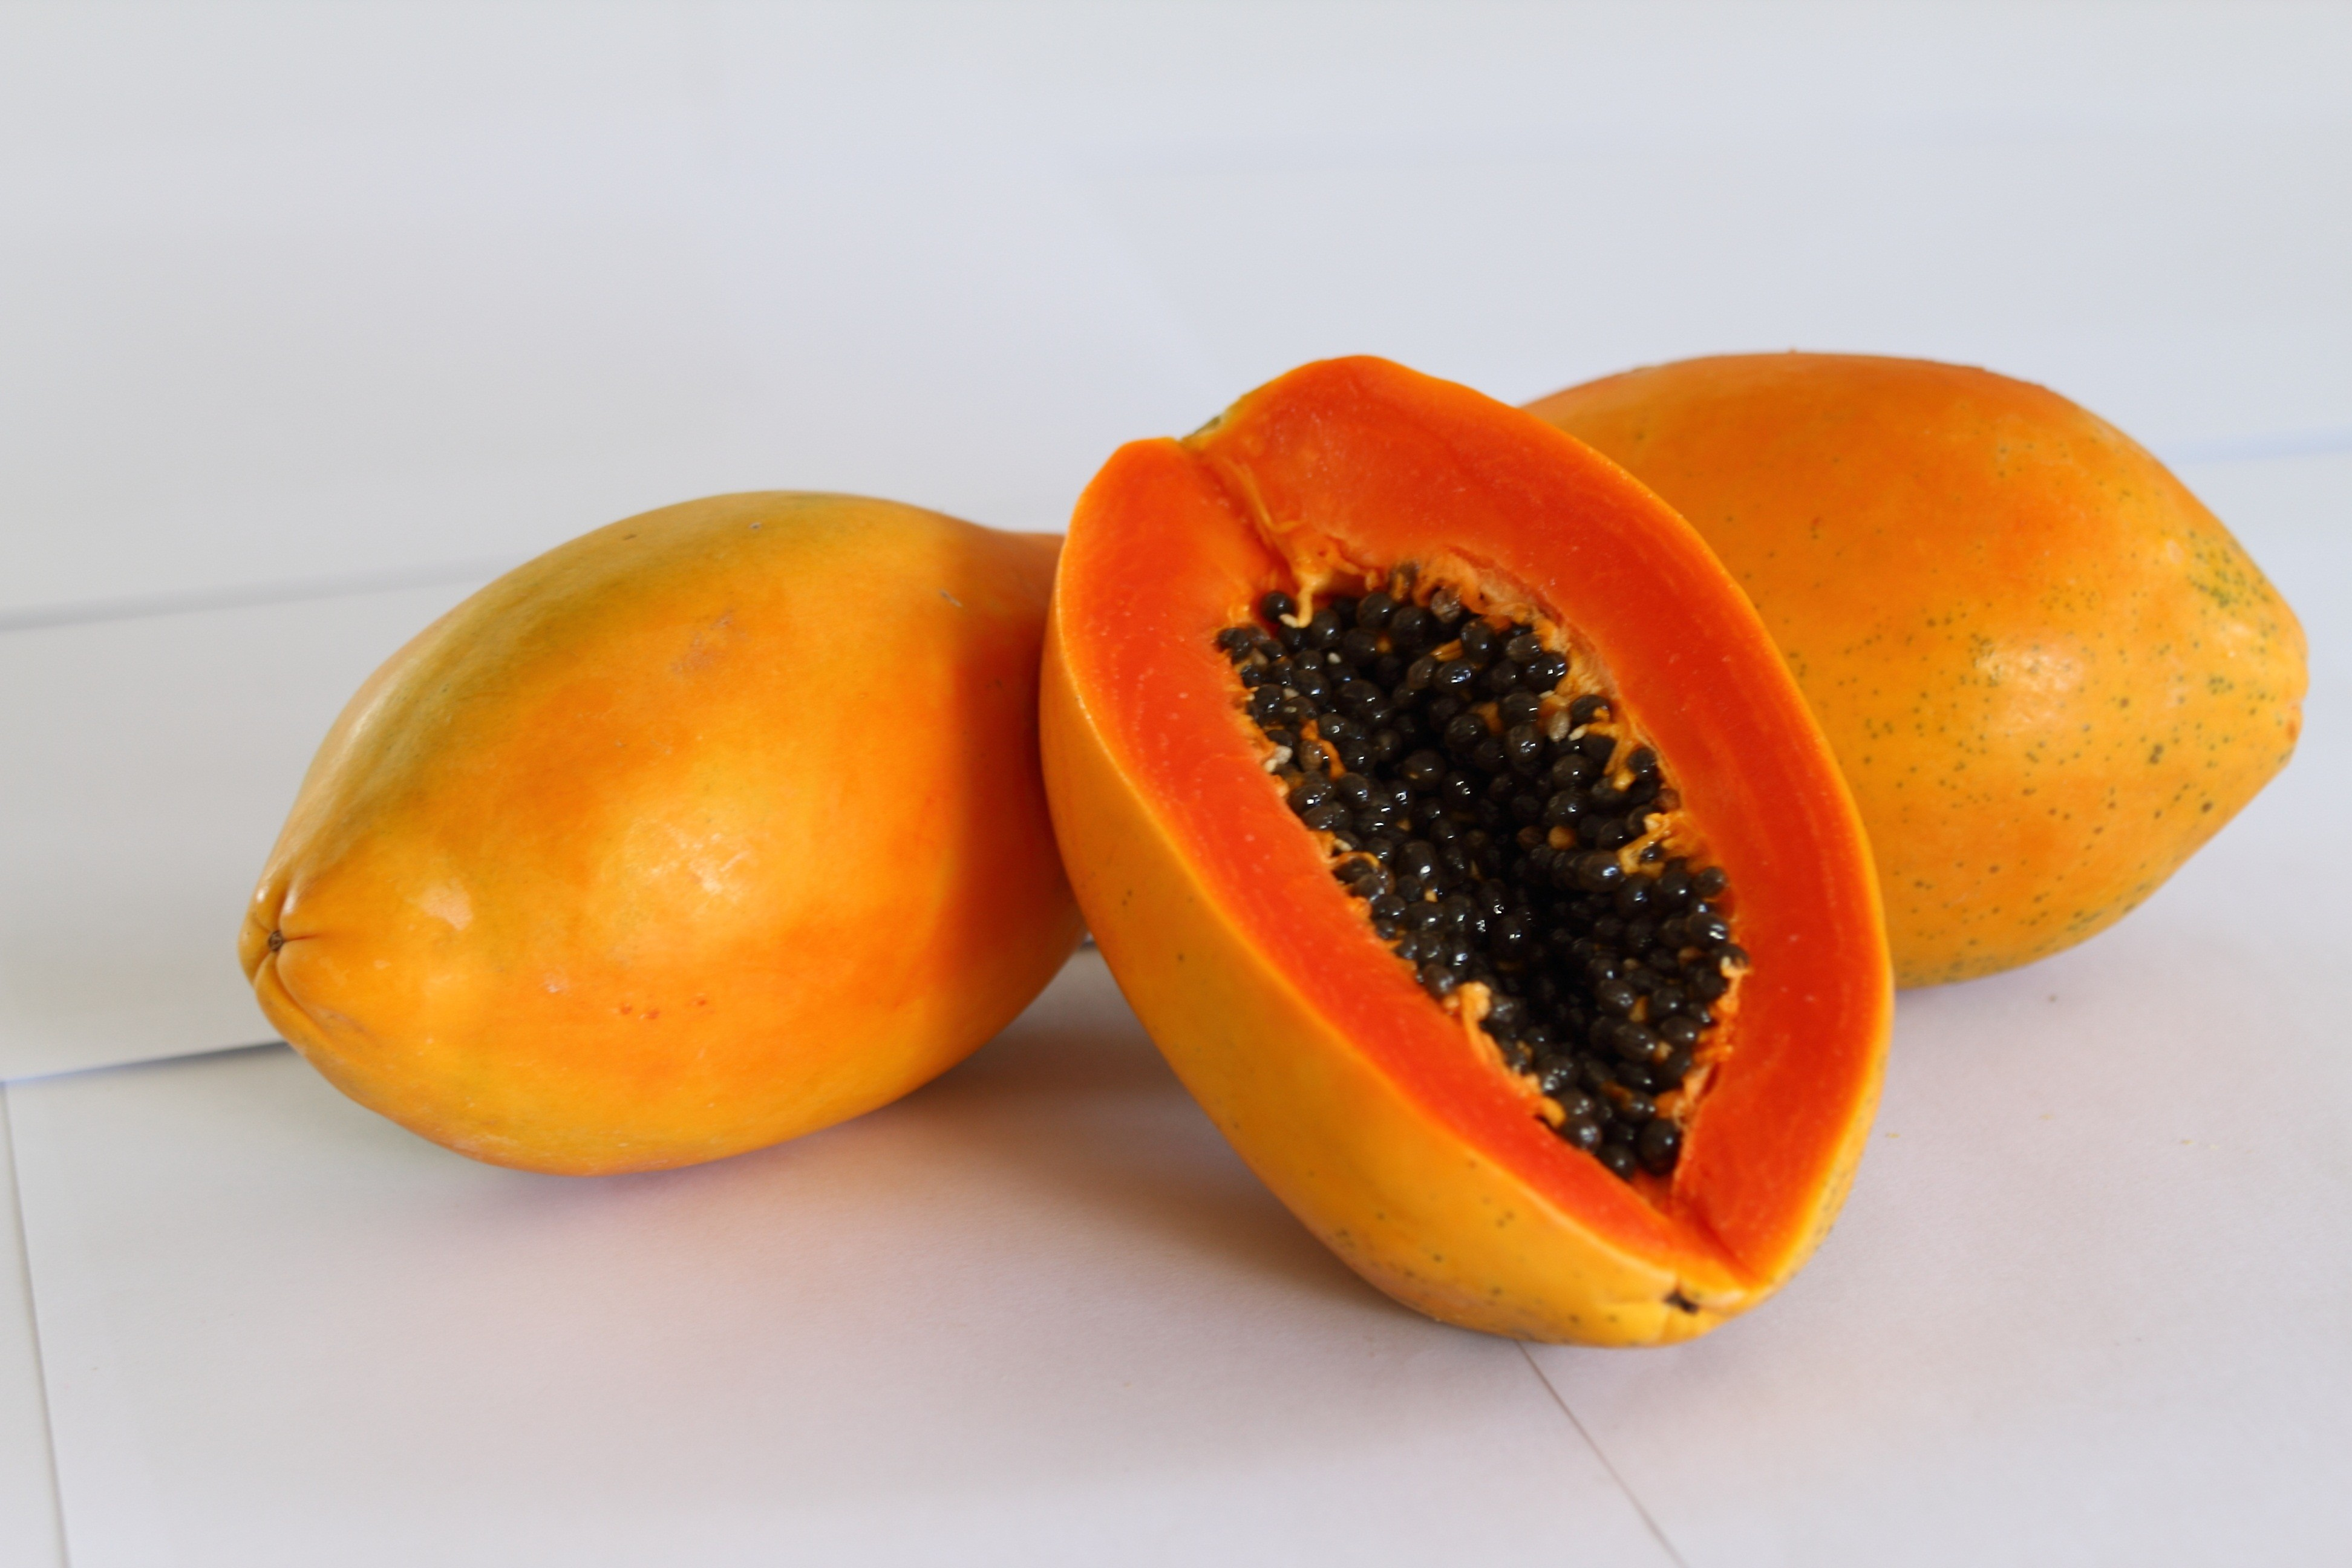 E00004 17 moreover El Guisante Y Sus Propiedades as well Papaya Puesta Papaya Partida besides Is Coffee A Laxative together with Watch. on colon digestion